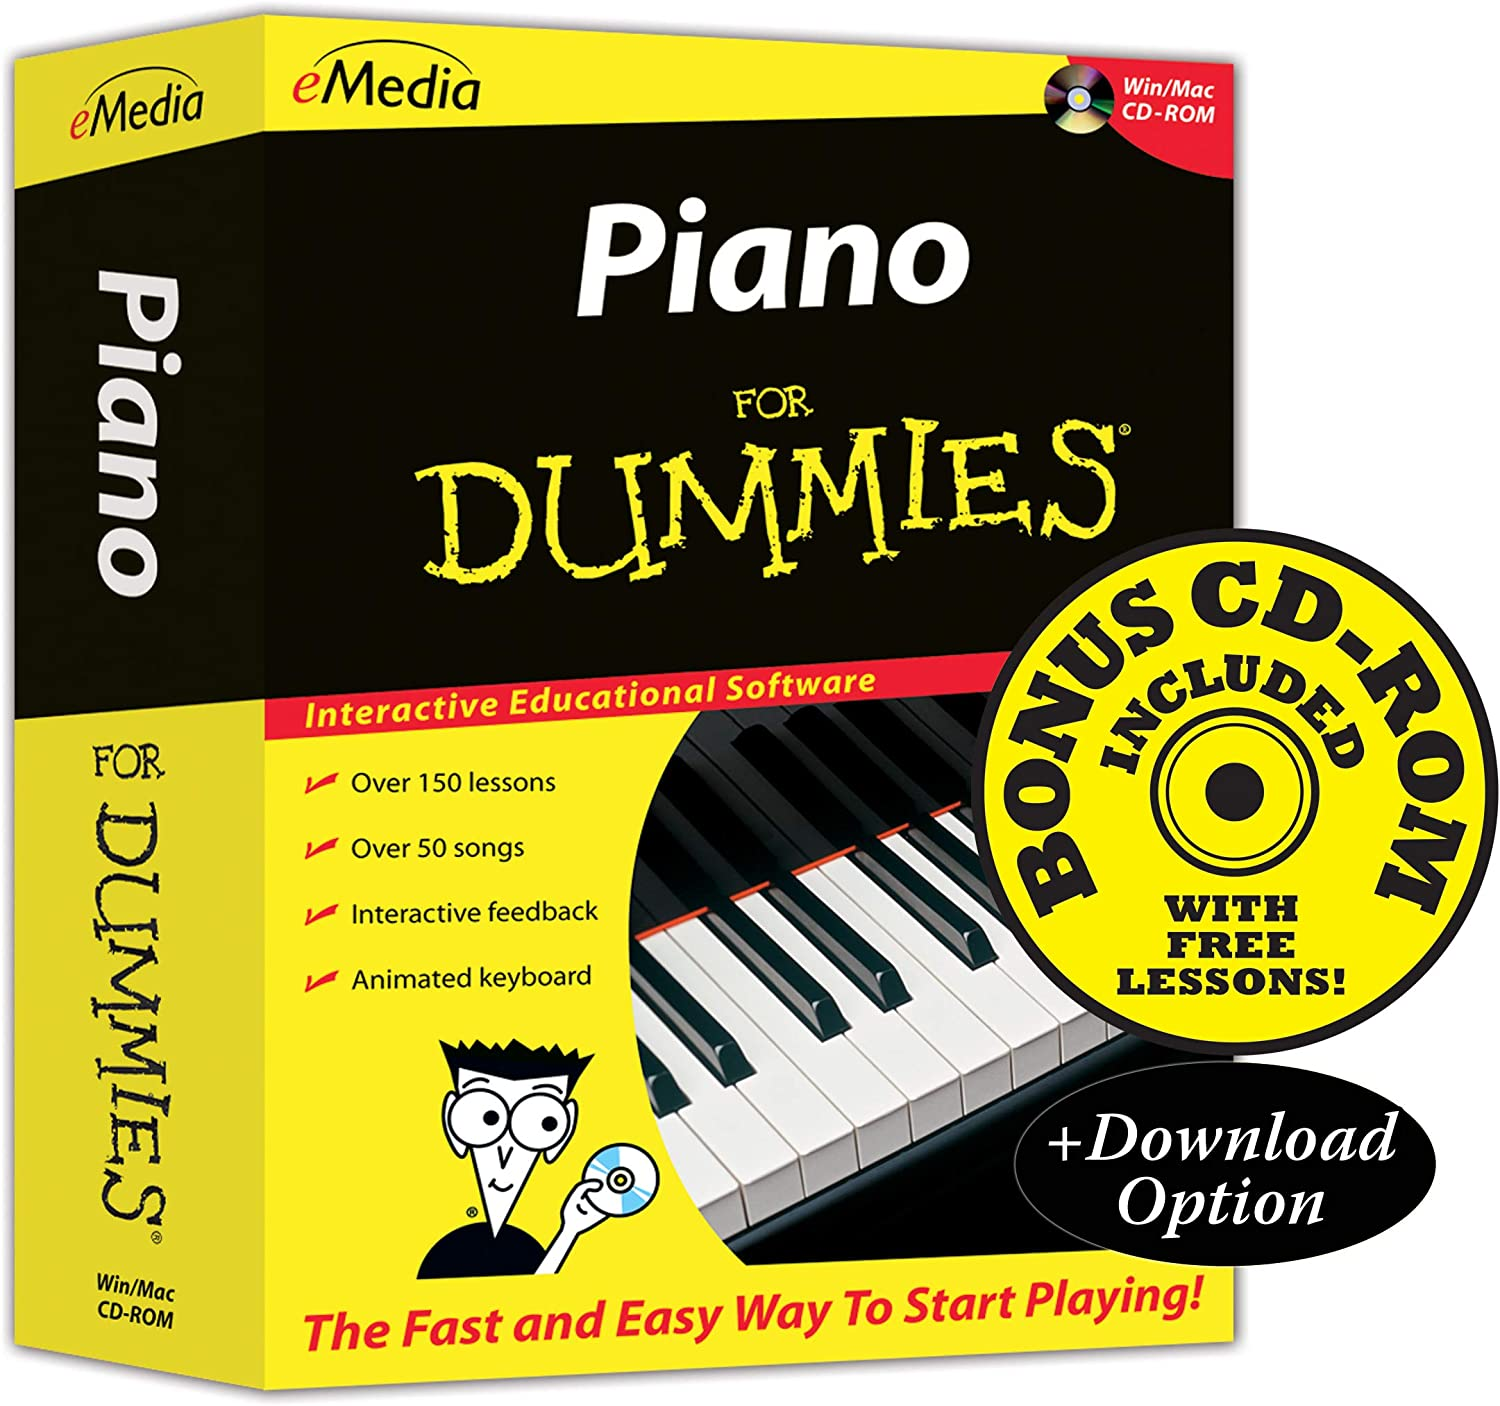 eMedia Piano For Dummies v2 - Amazon Exclusive Edition with 150+ Additional Lessons 81AnZ4NJT2BL